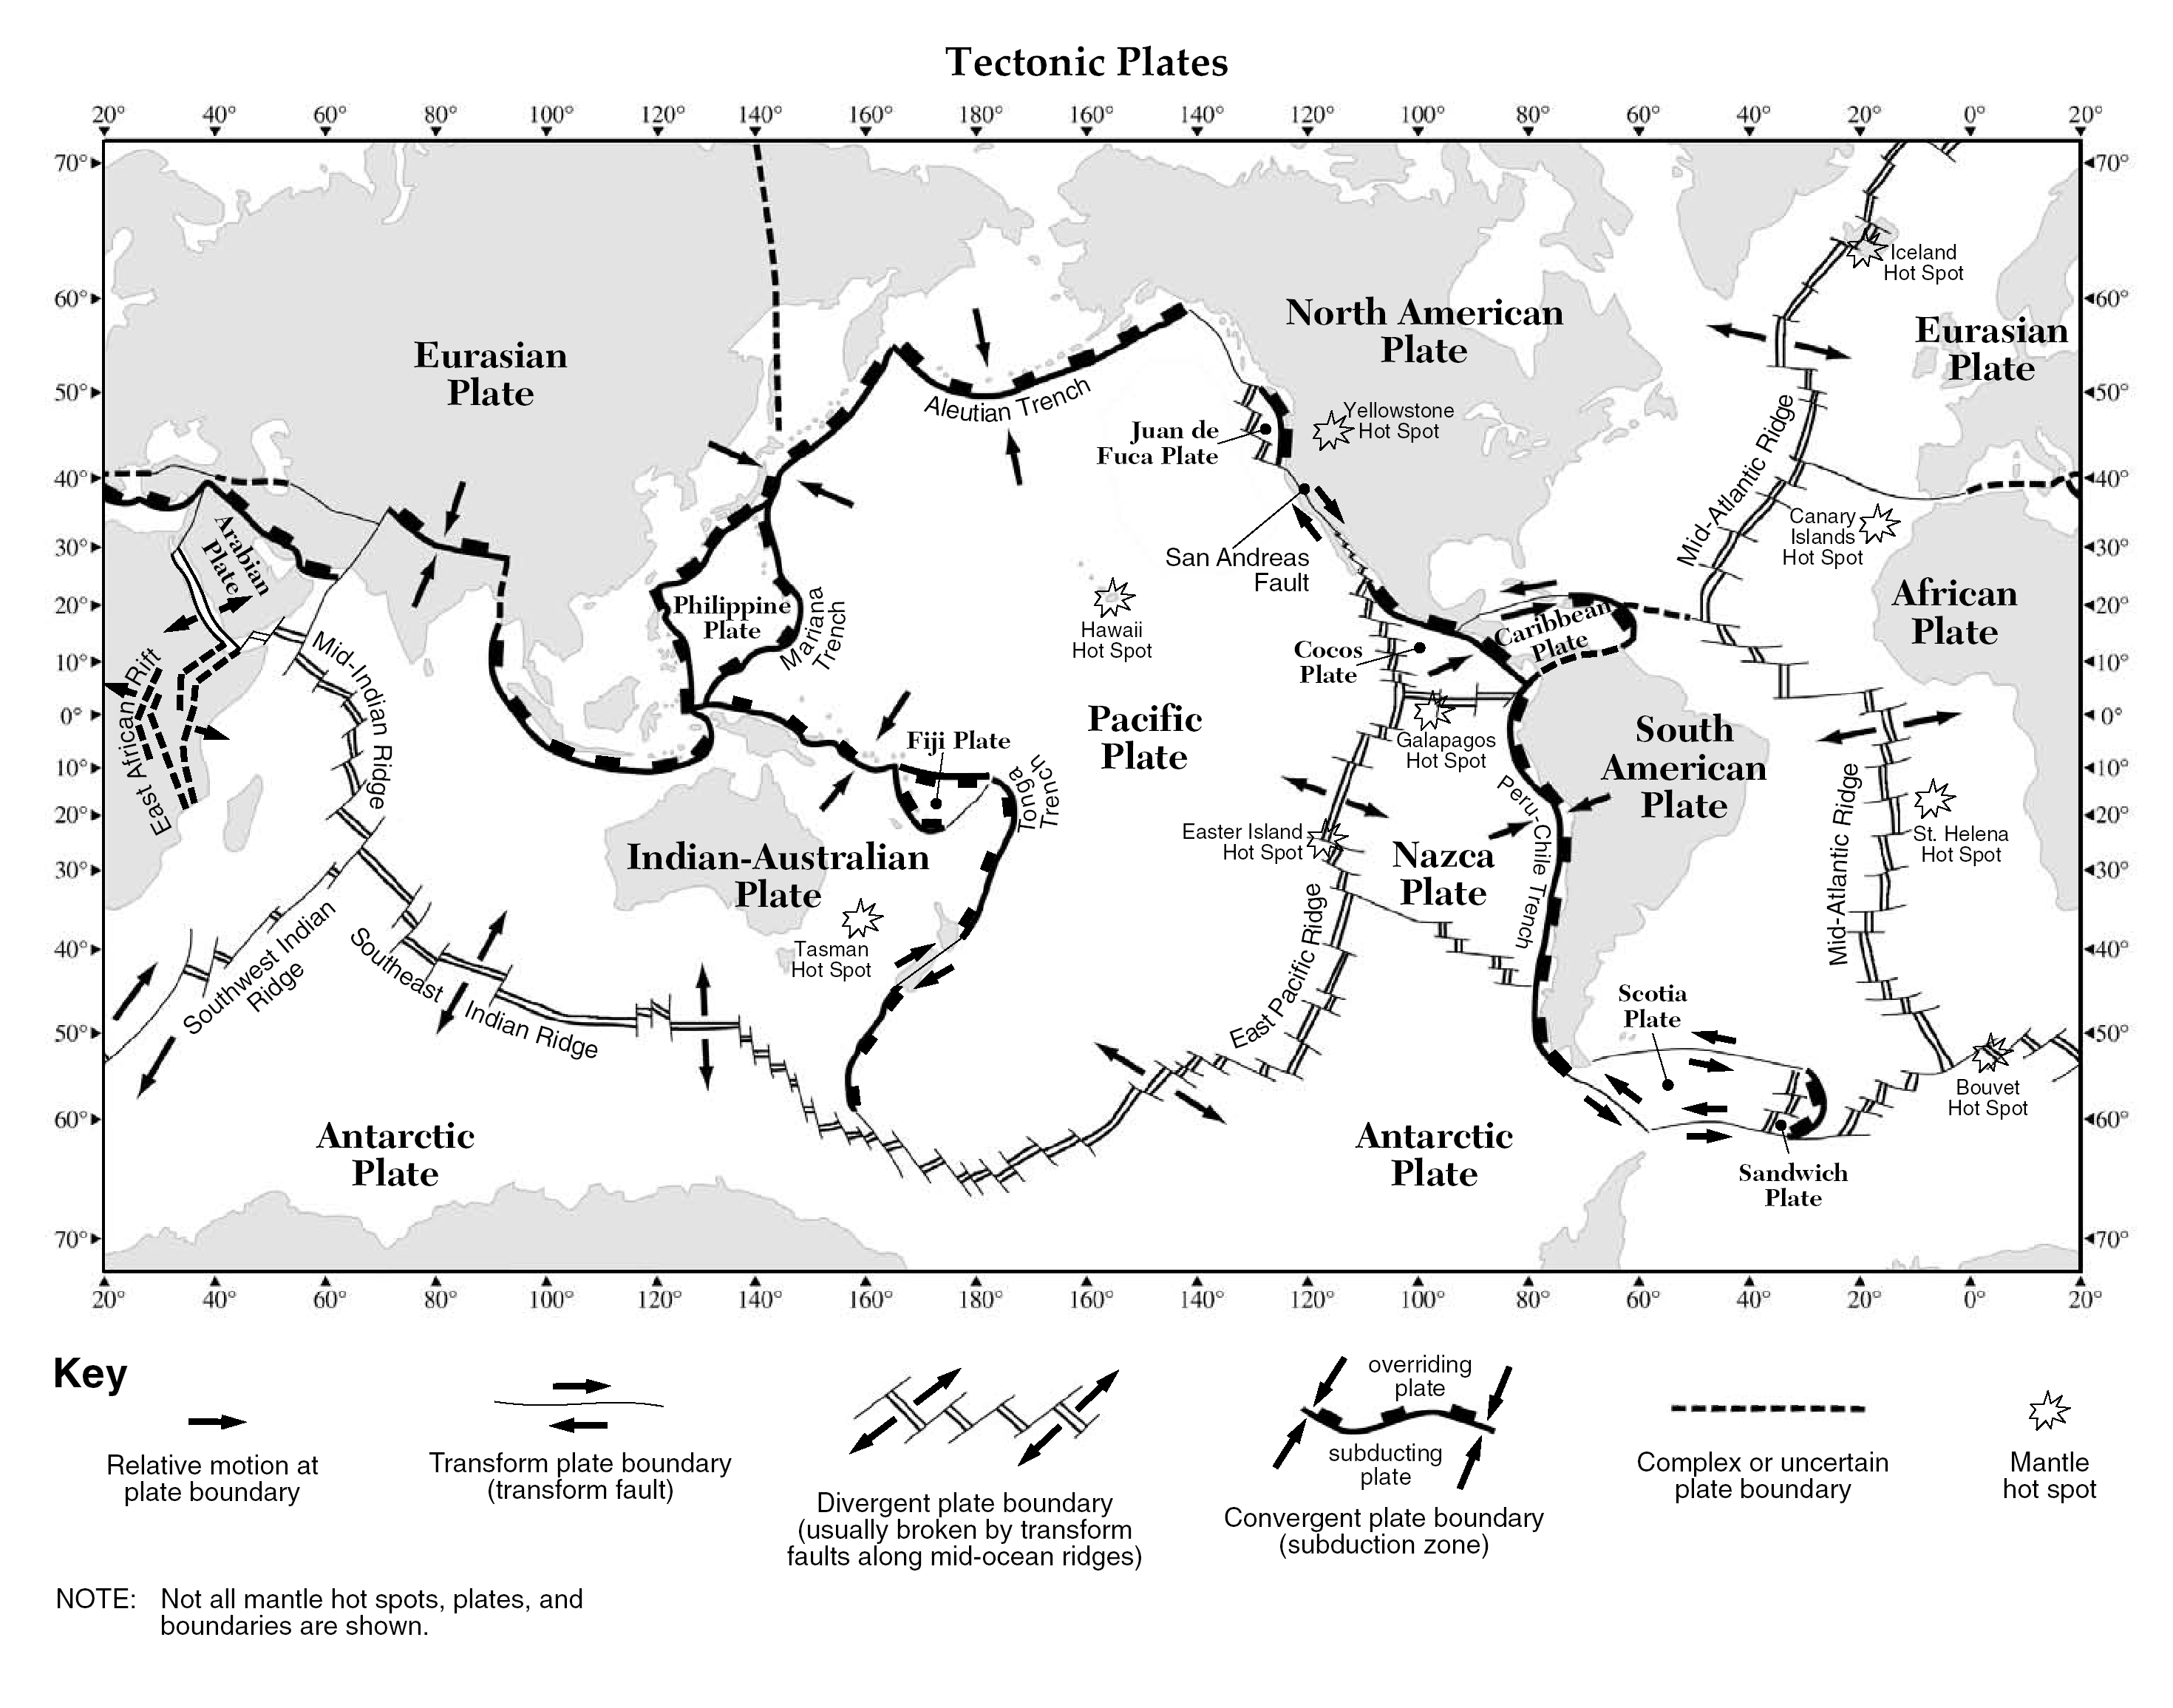 Plate Tectonics Worksheet with Questions by The Sci Guy | TpT